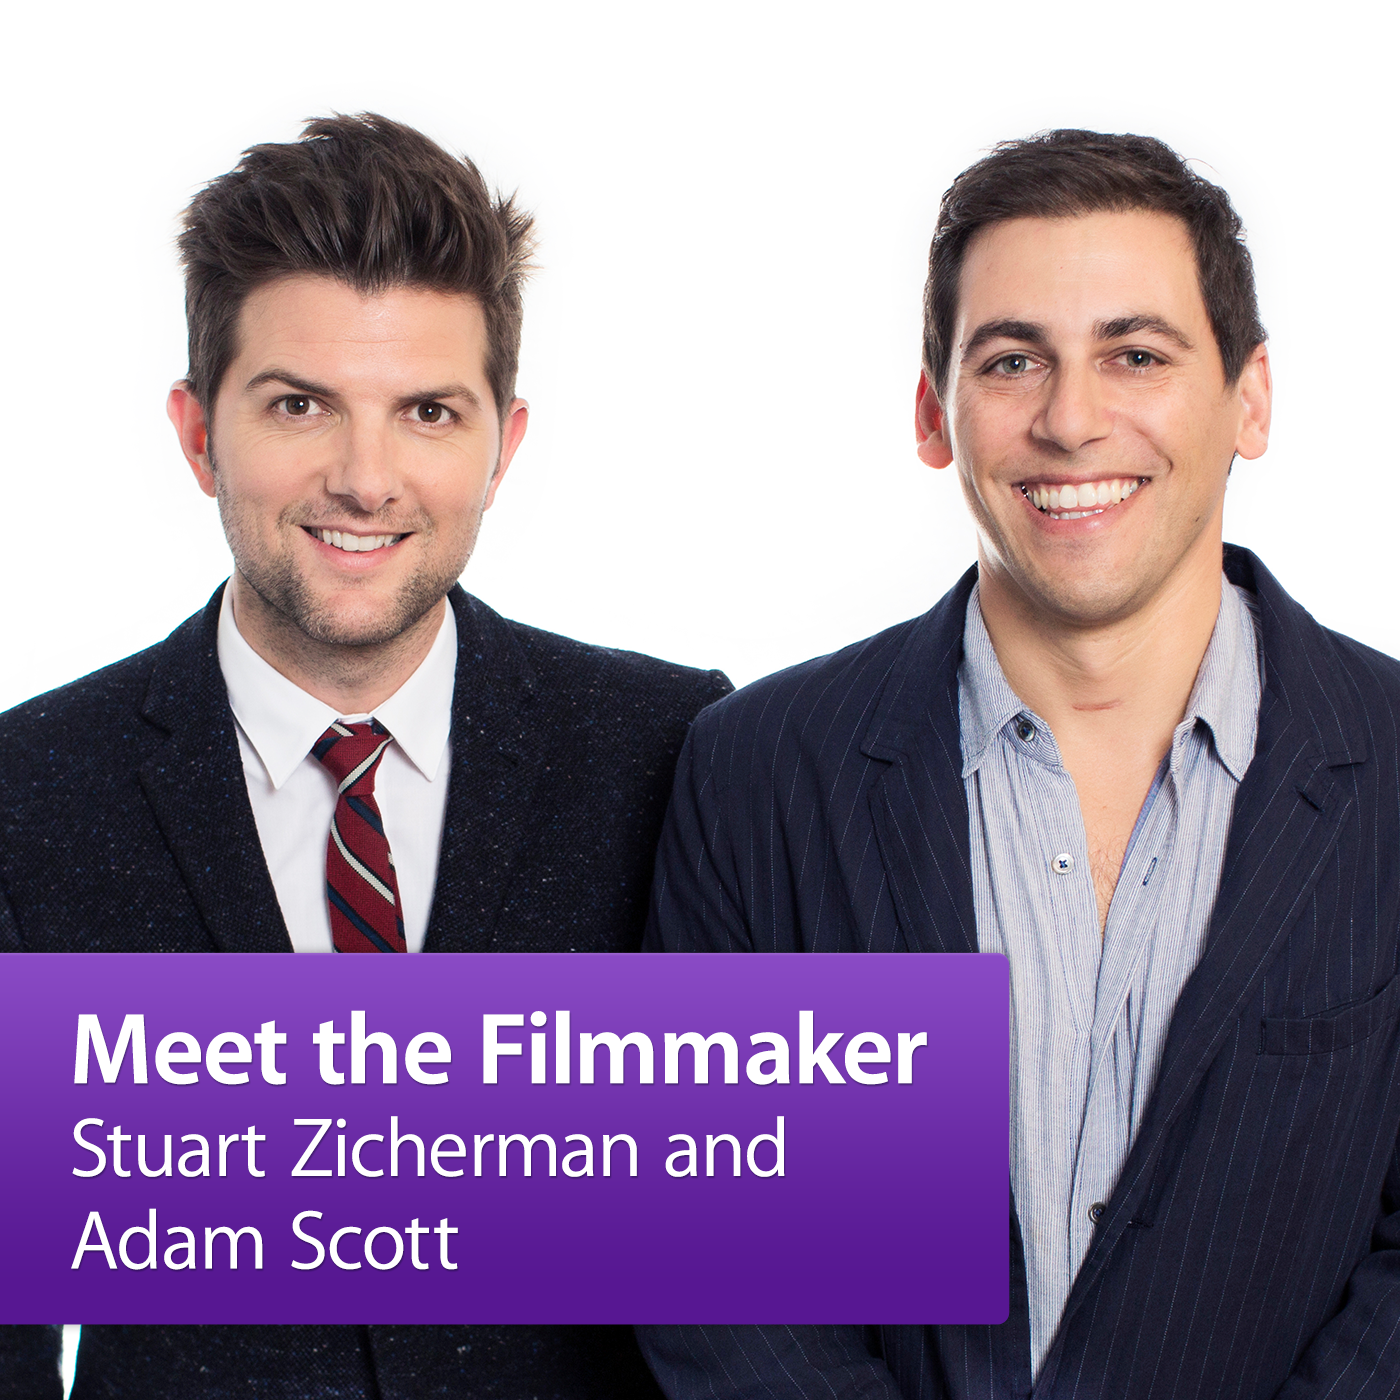 Stuart Zicherman and Adam Scott: Meet the Filmmaker